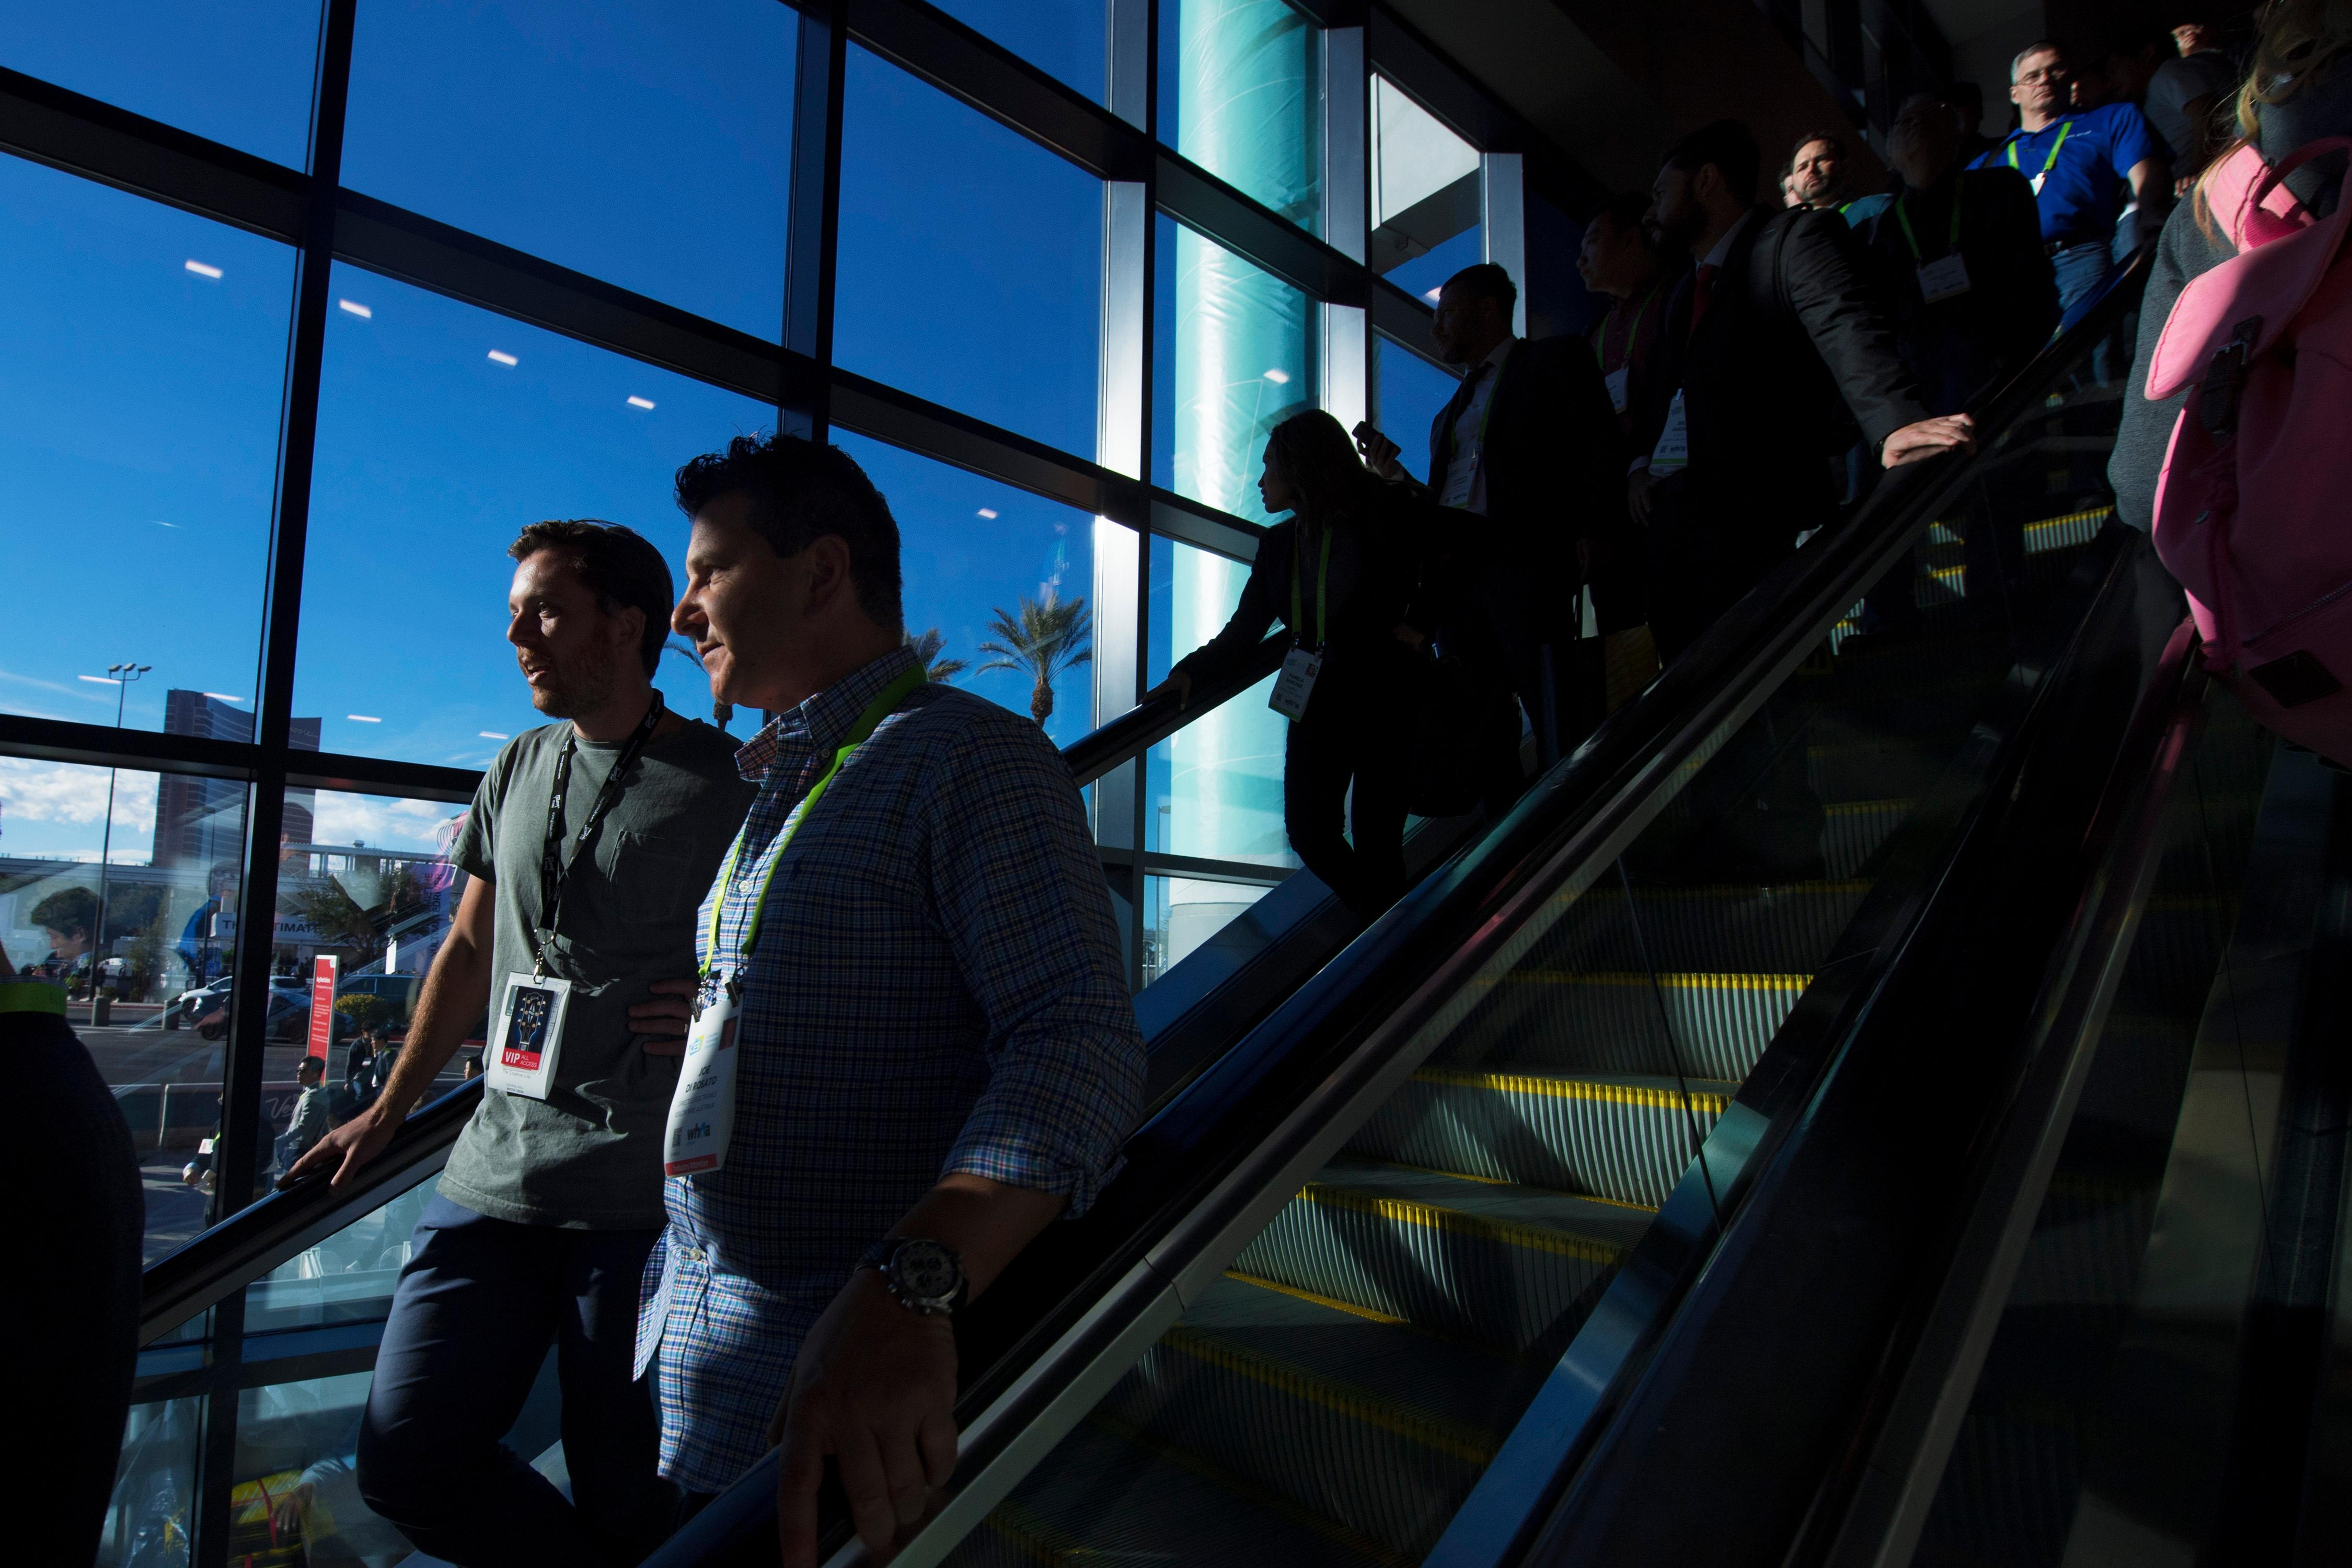 Attendees ride the escalator in the South Hall of the Las Vegas Convention Center during the second day of CES Wednesday, January 10, 2018. CREDIT: Sam Morris/Las Vegas News Bureau